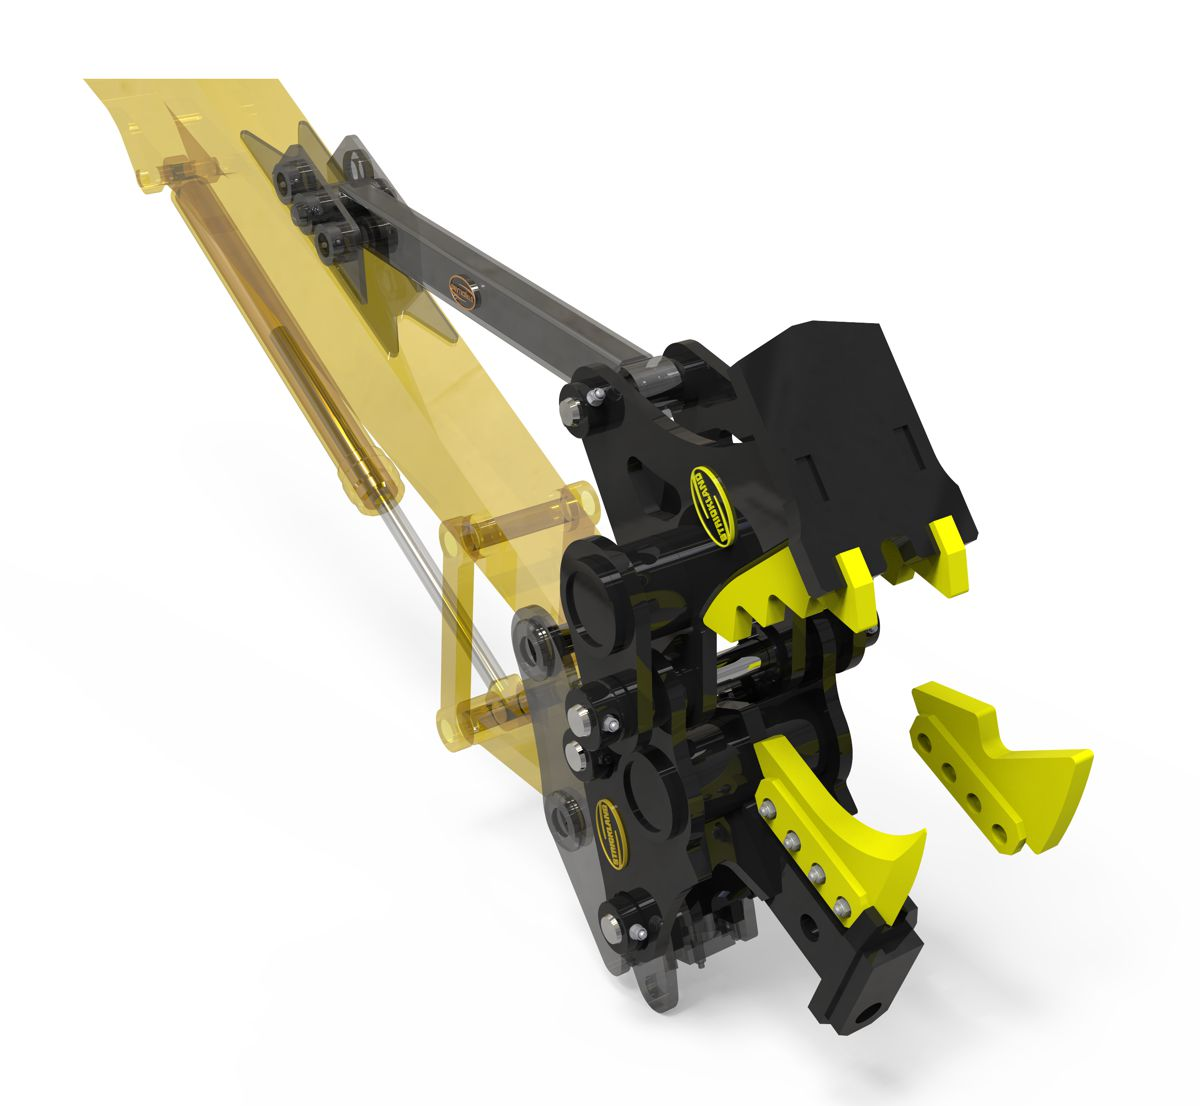 Strickland launch multi-function concrete pulveriser and tree stump cracker